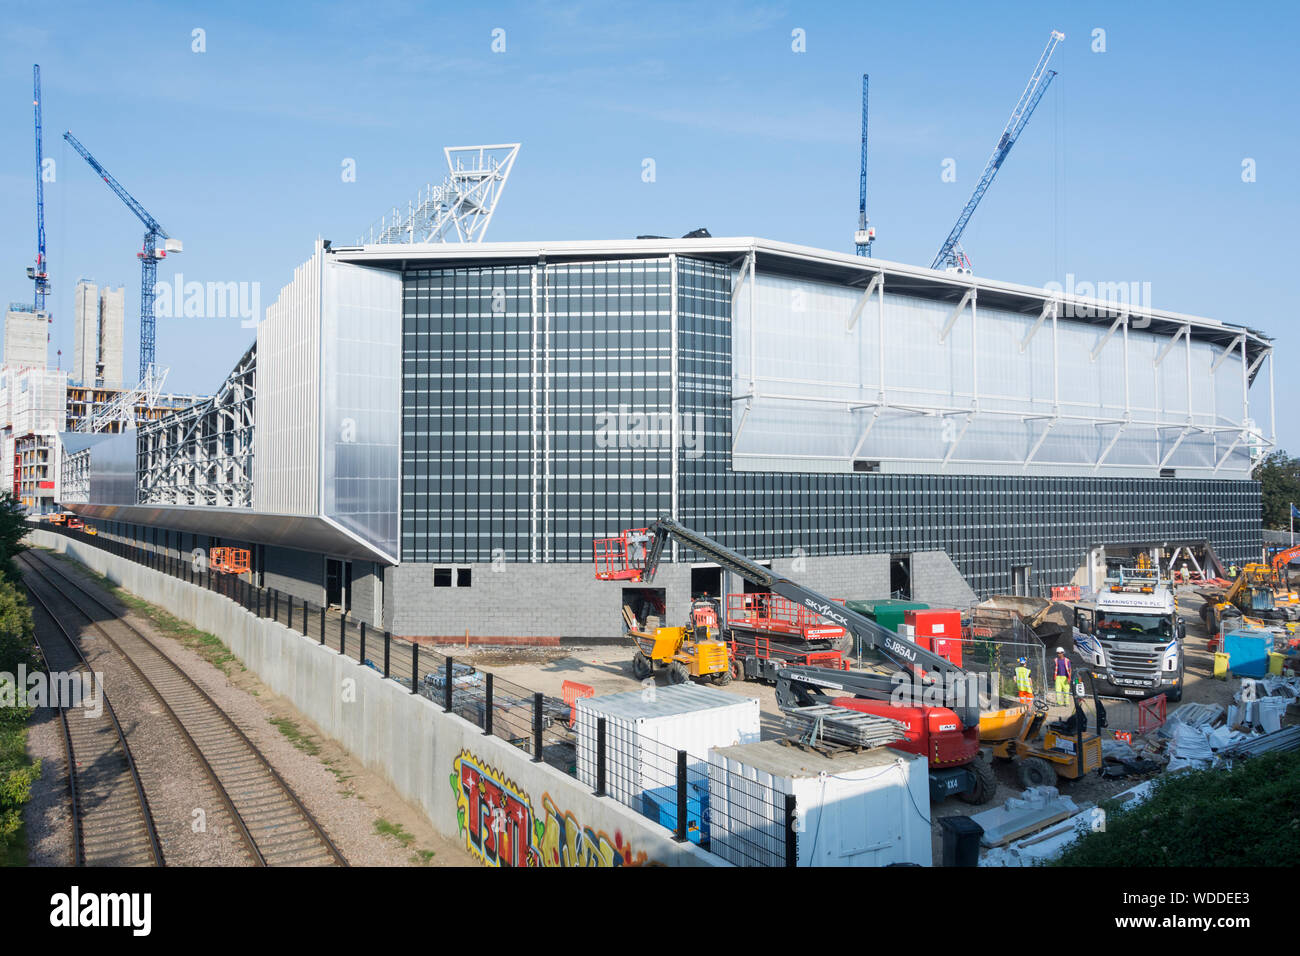 The Brentford Community Stadium under construction, the new home of Brentford Football Club in Brentford, Hounslow, south west London, UK Stock Photo